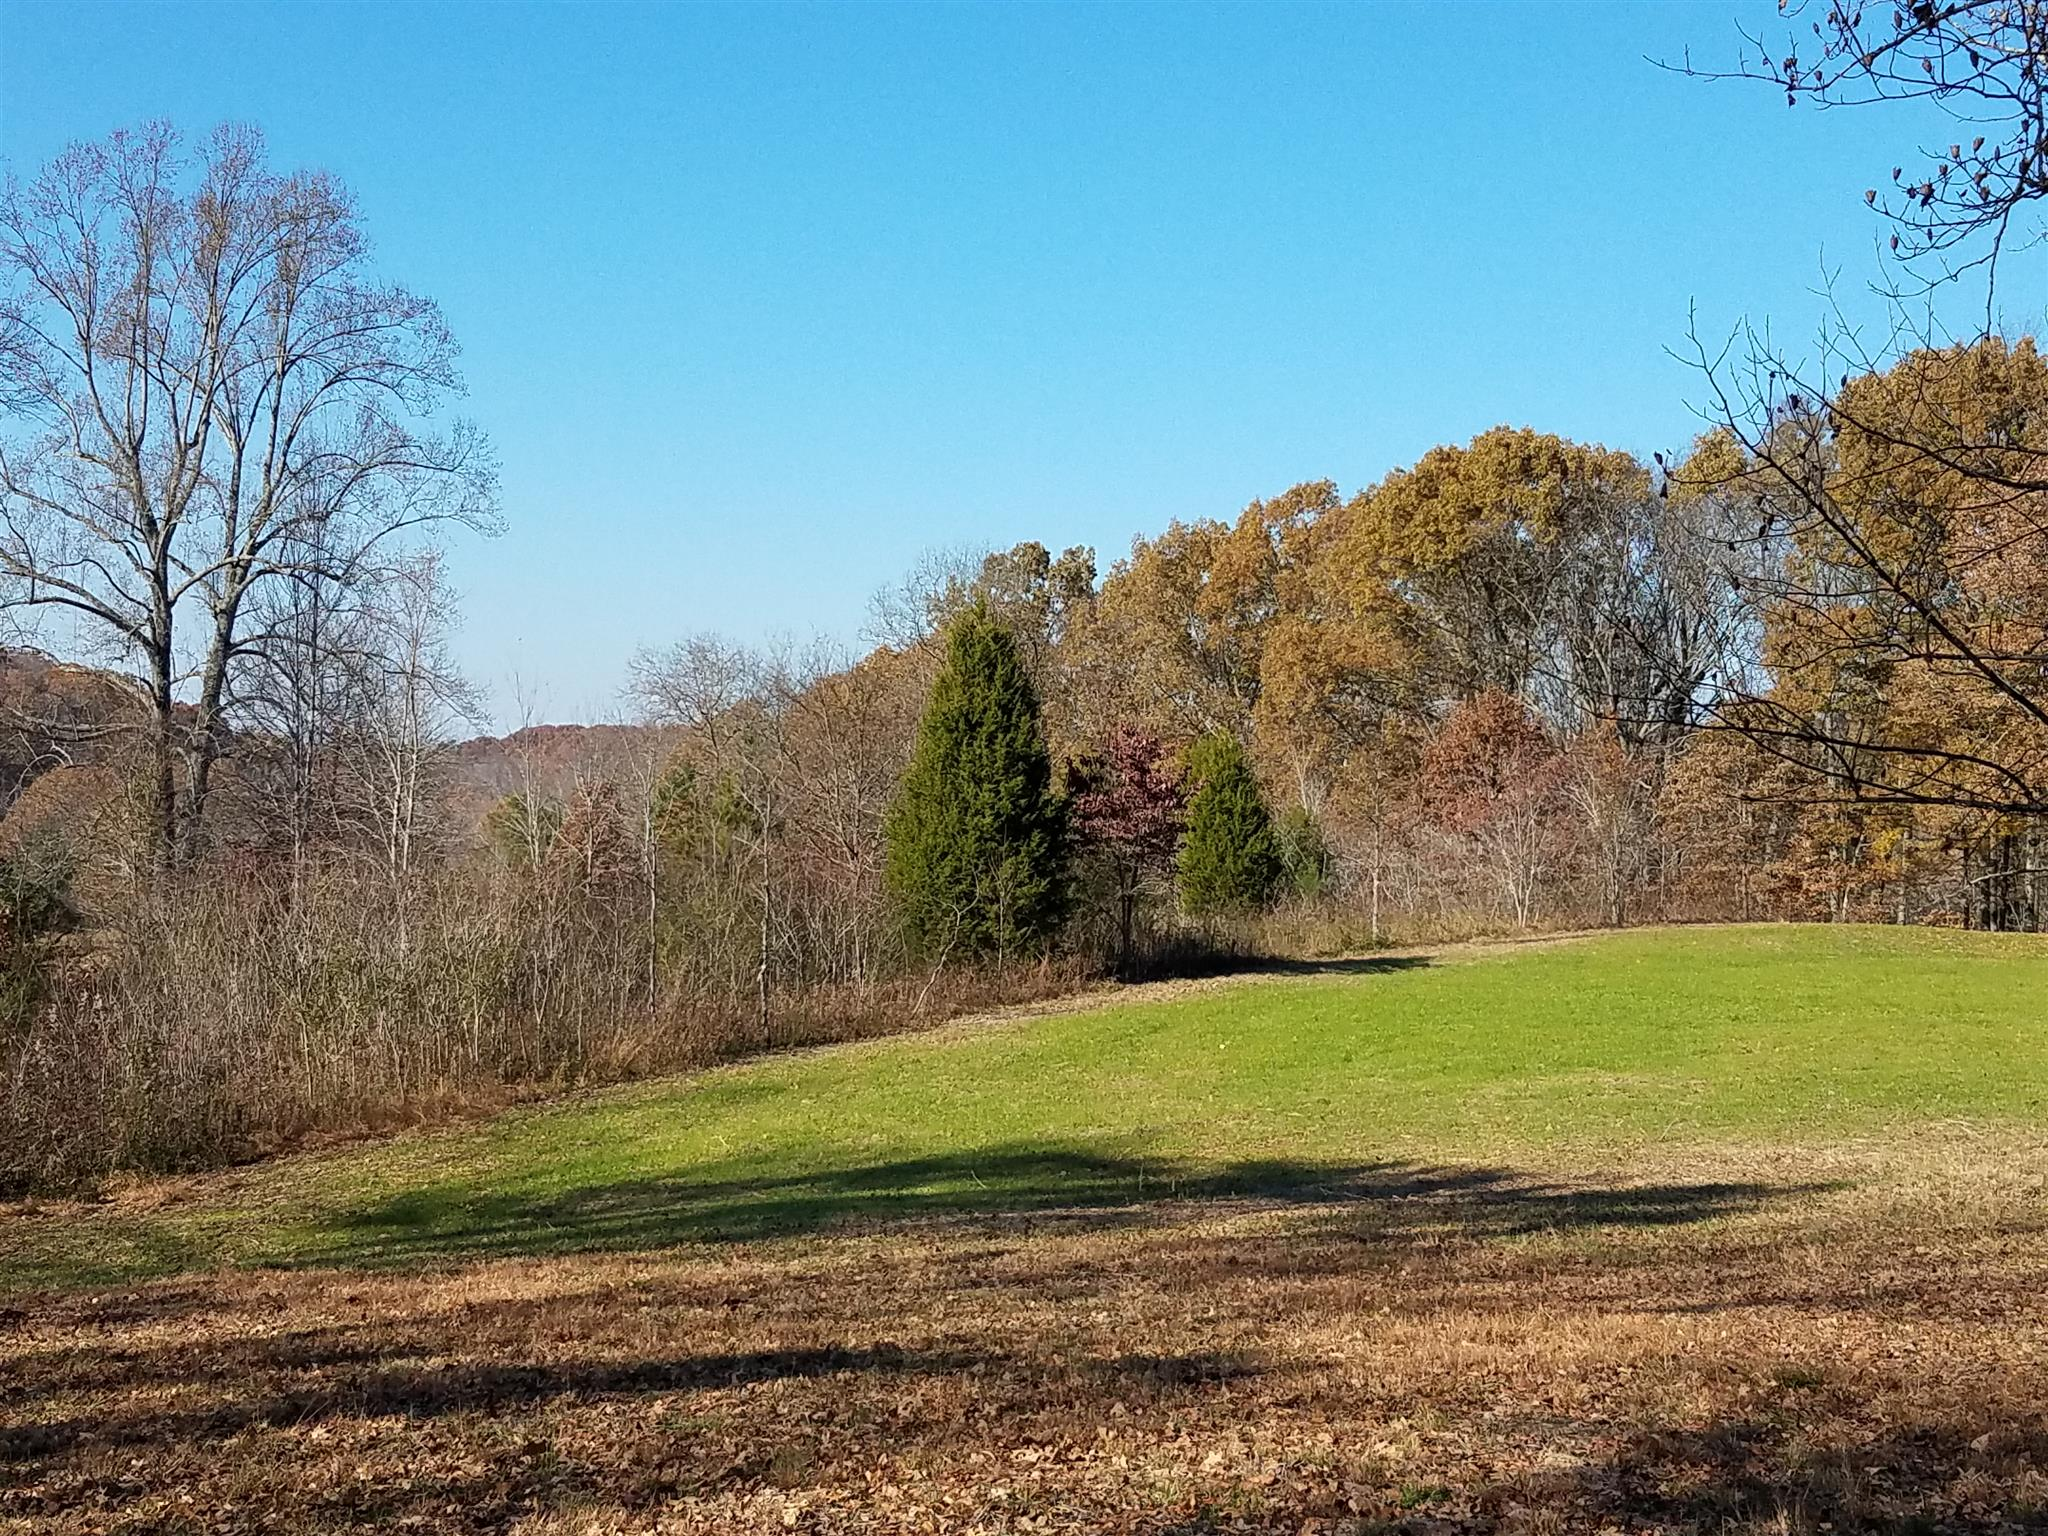 2 LIBERTY RD - Lot #2, Fairview in Williamson County County, TN 37062 Home for Sale